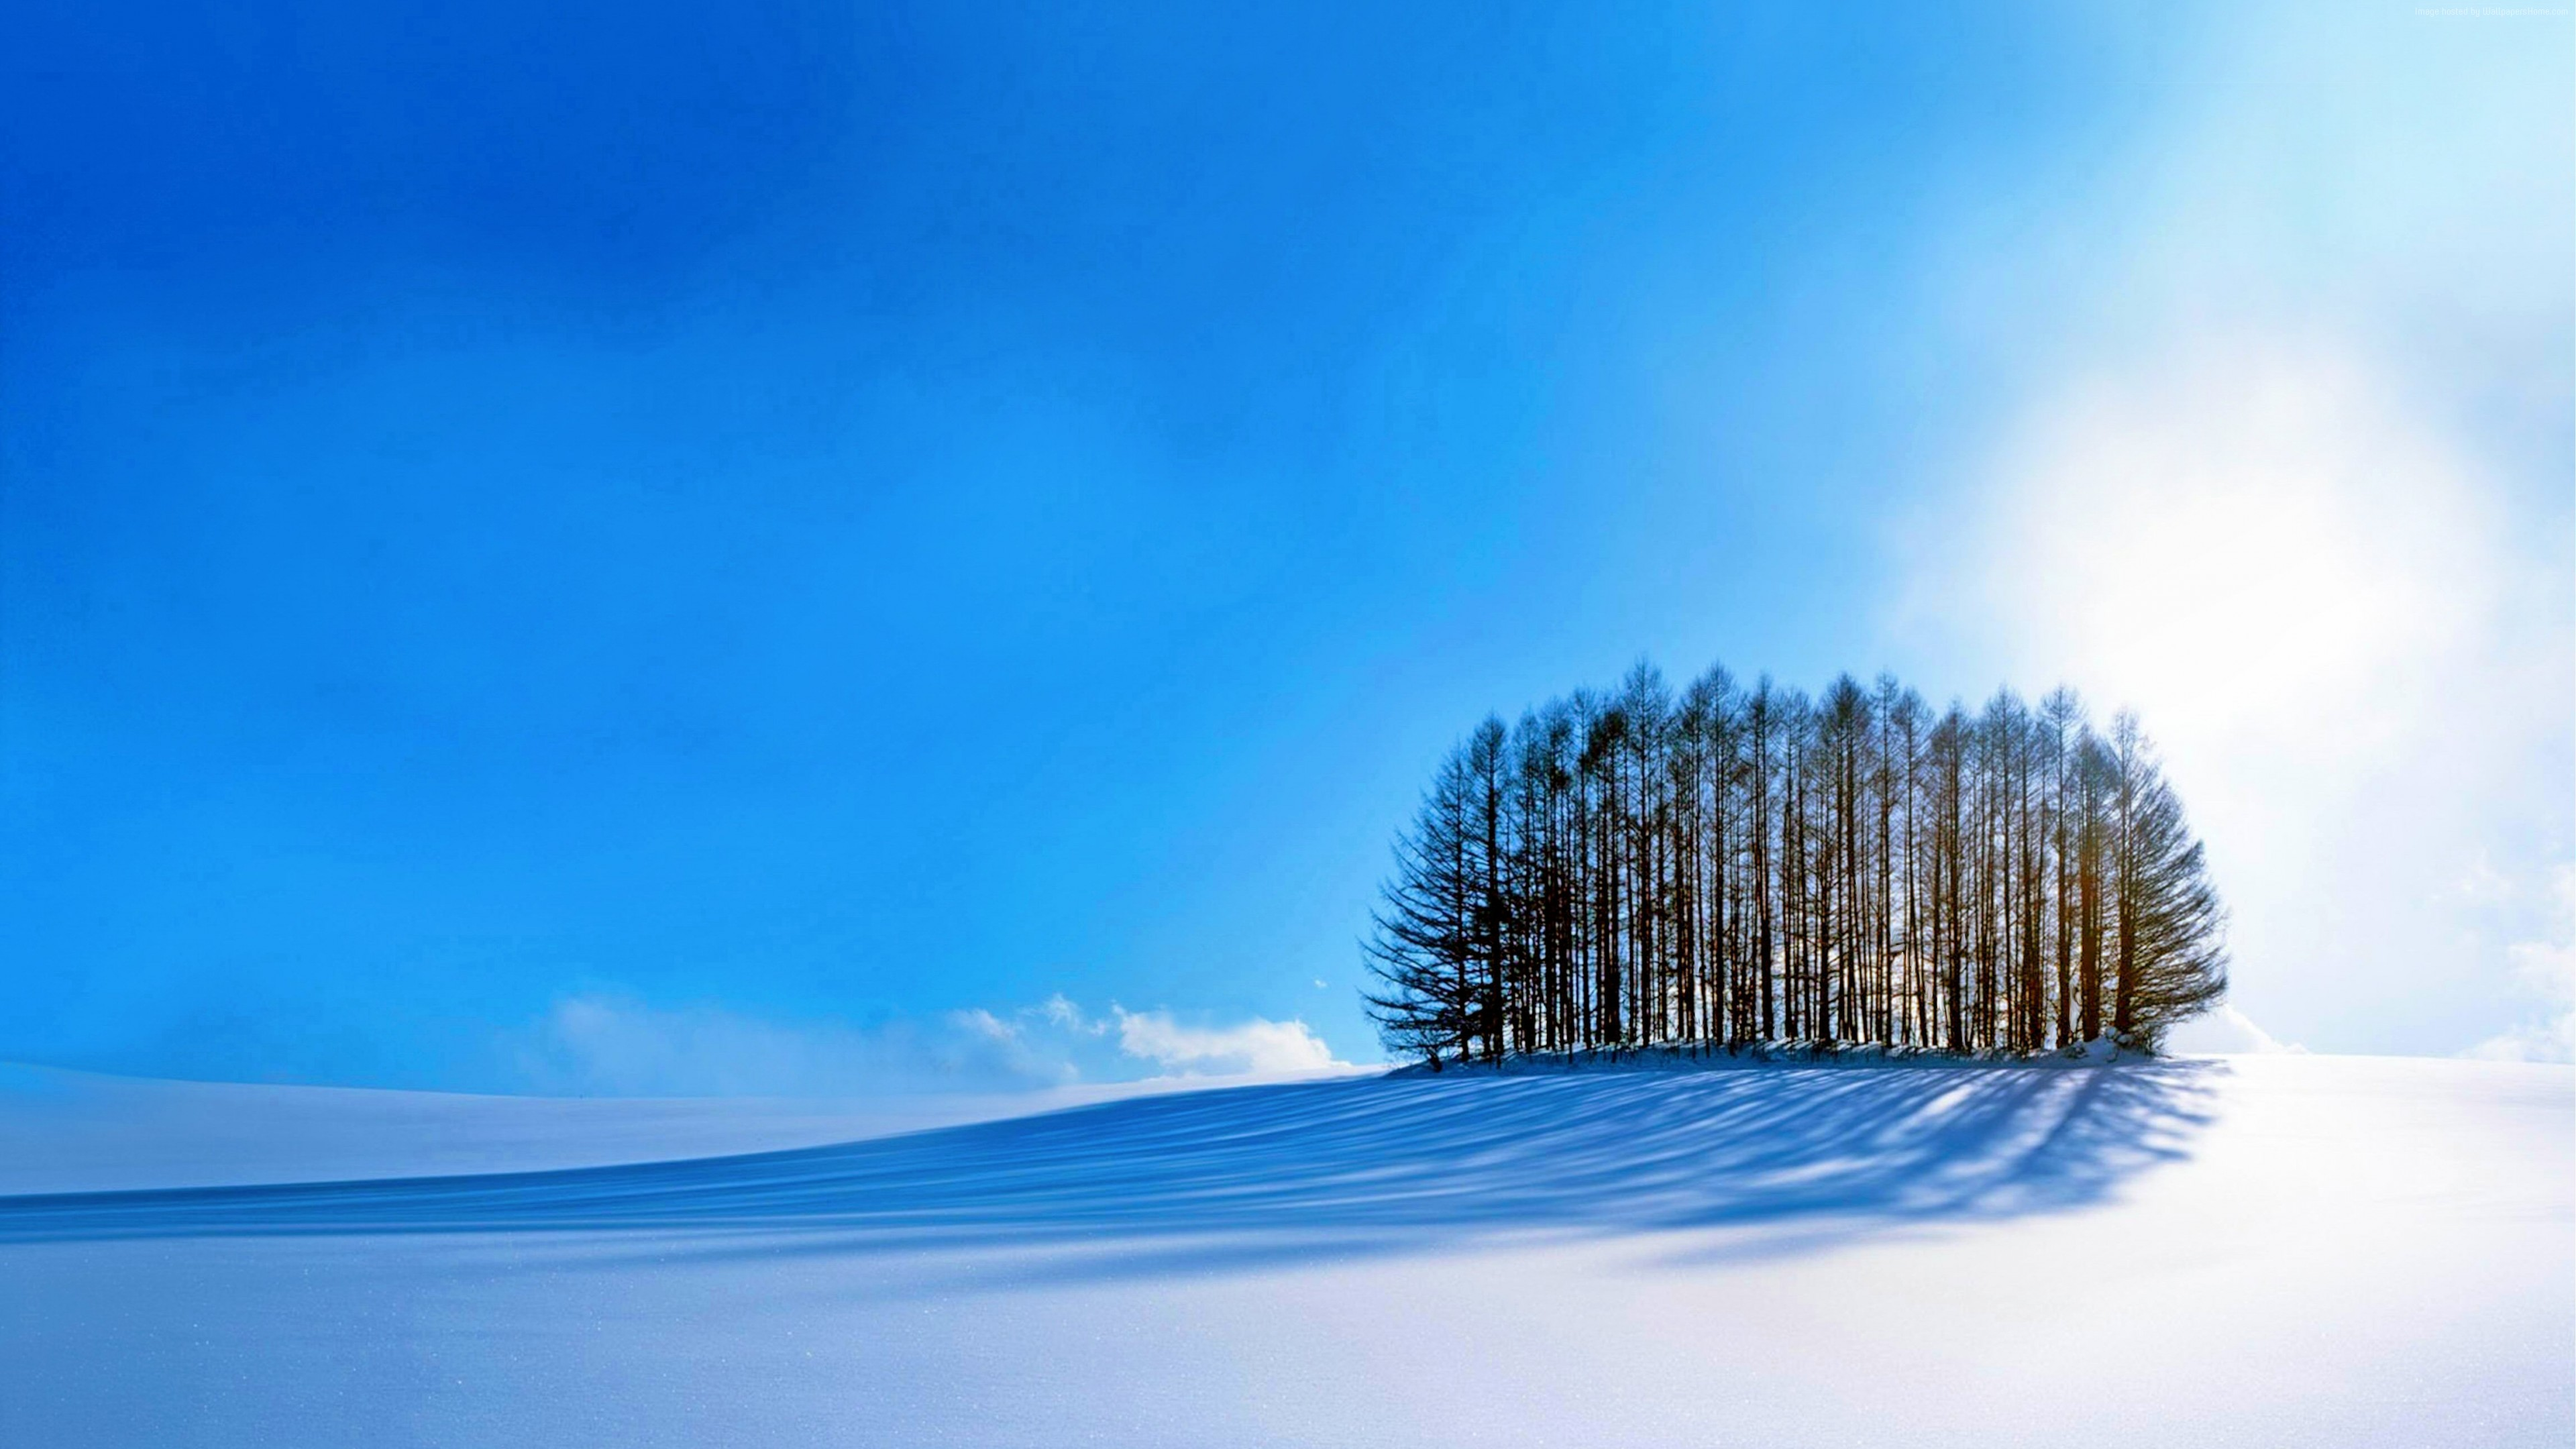 Wallpaper Trees Sky Snow Winter 4k Nature Wallpaper Download High Resolution 4k Wallpaper